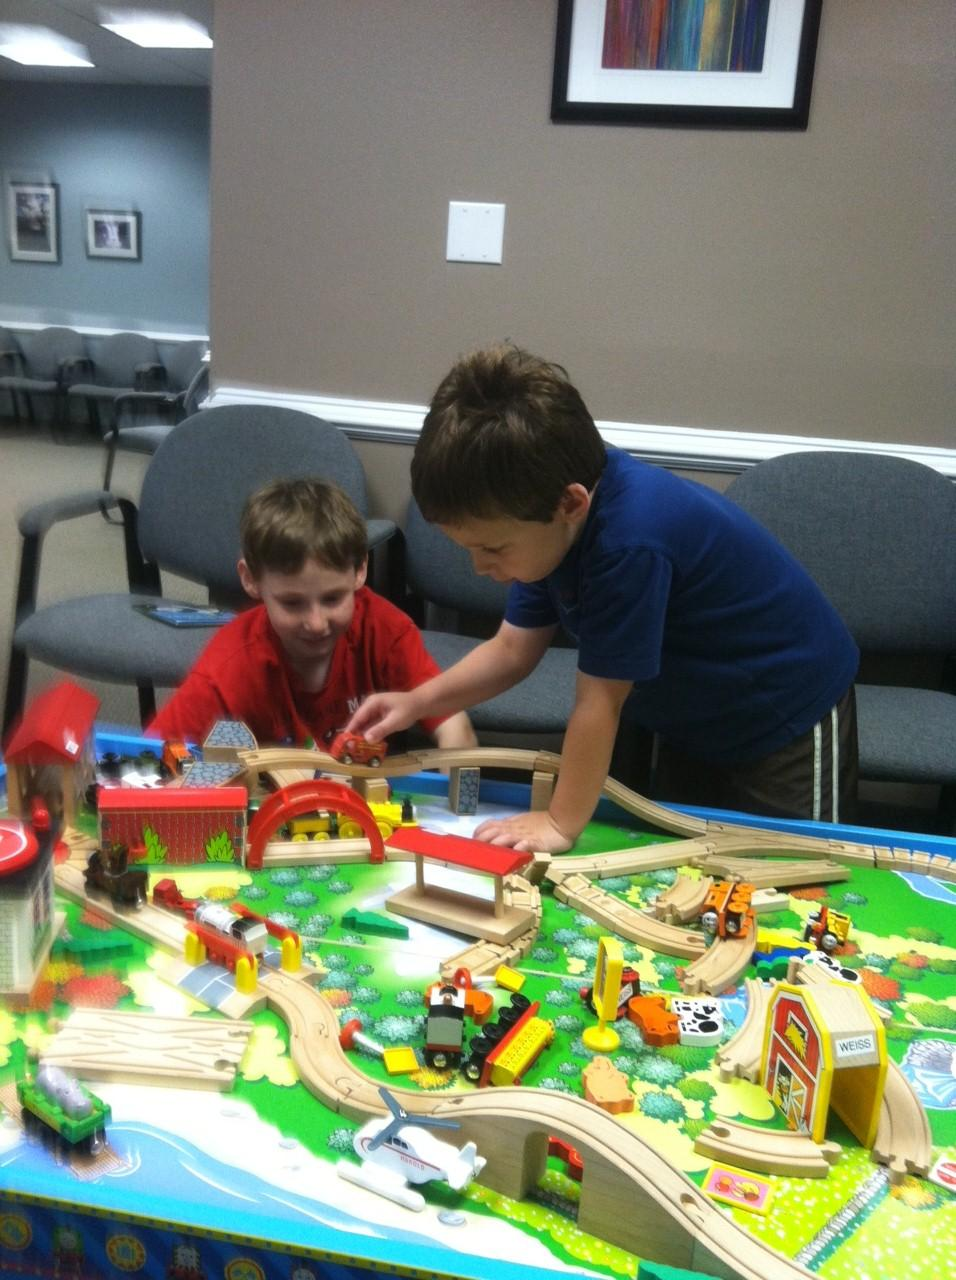 Jason and Ryan playing with trains